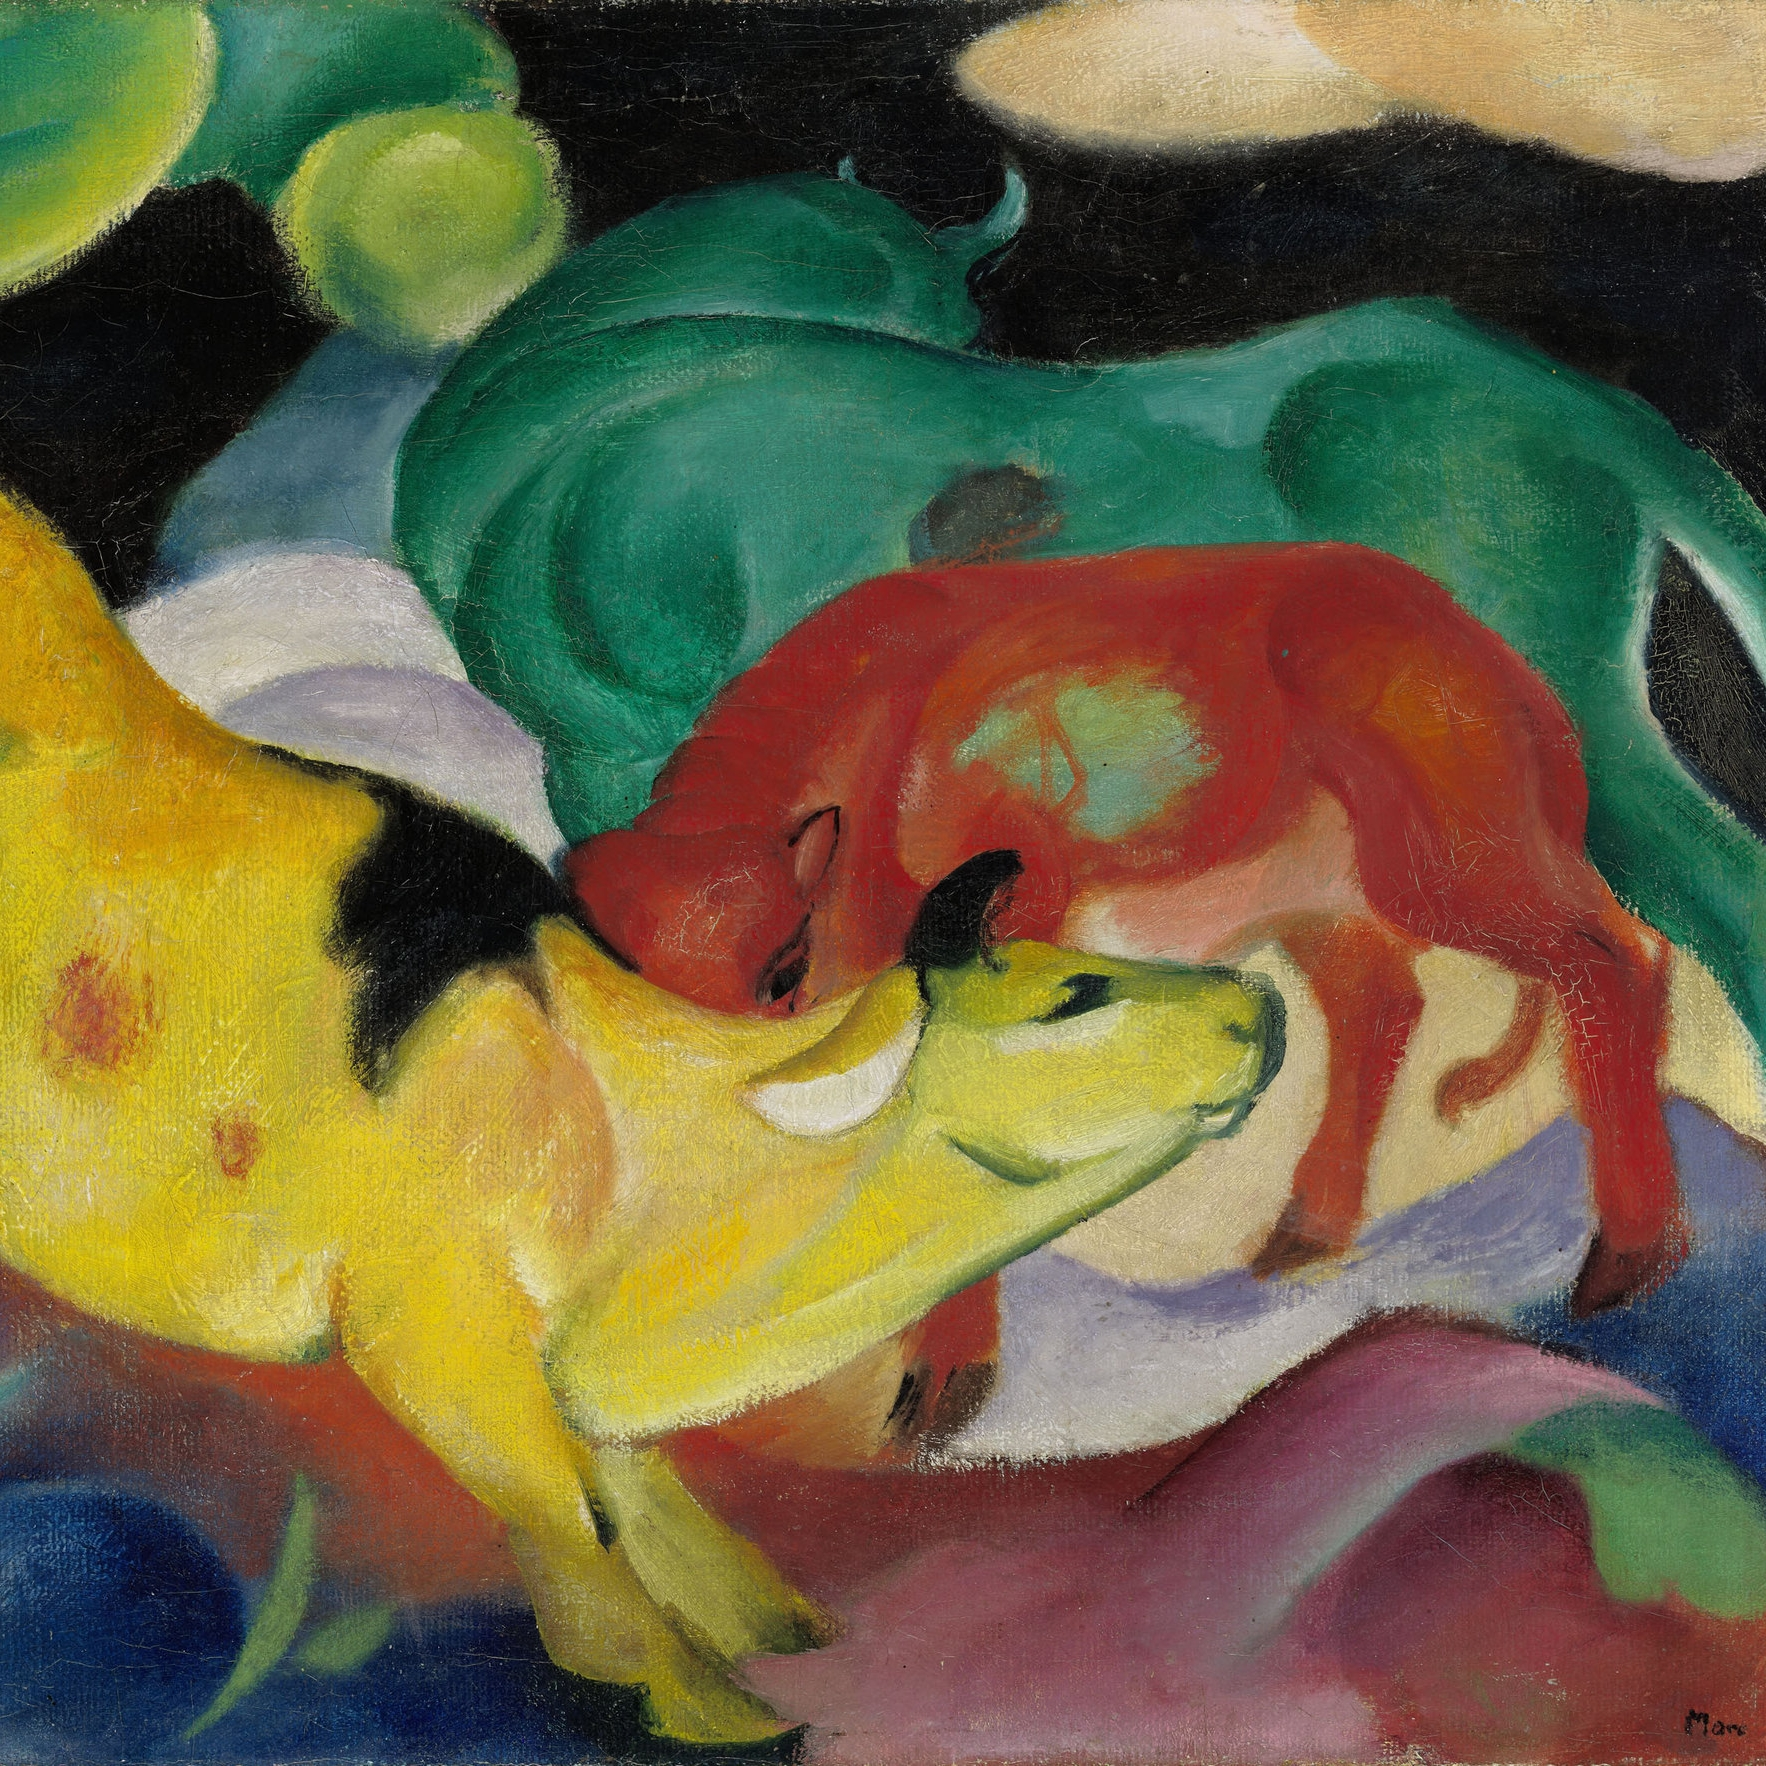 IMAGE CREDIT: Die gelbe Kuh (The  Yellow Cow ), by Franz Marc (1911) [ https://commons.wikimedia.org/wiki/File:Franz_Marc-The_Yellow_Cow-1911.jpg ]